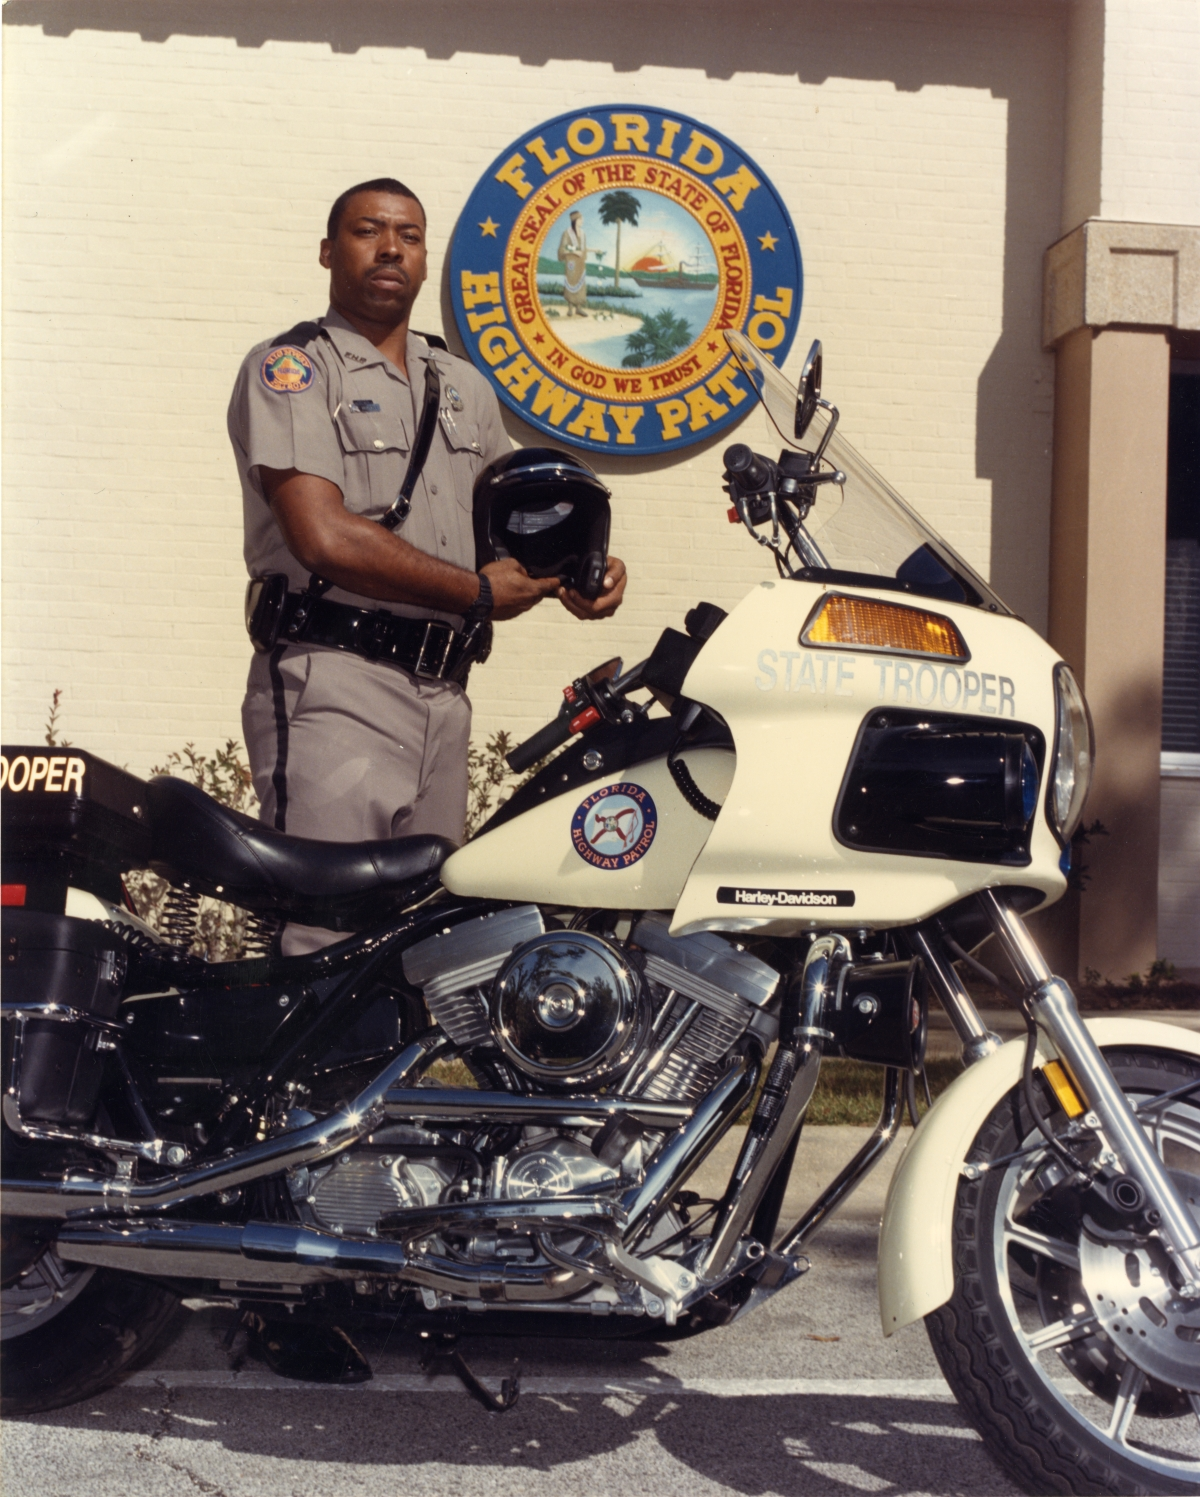 Florida Highway Patrol State Trooper With